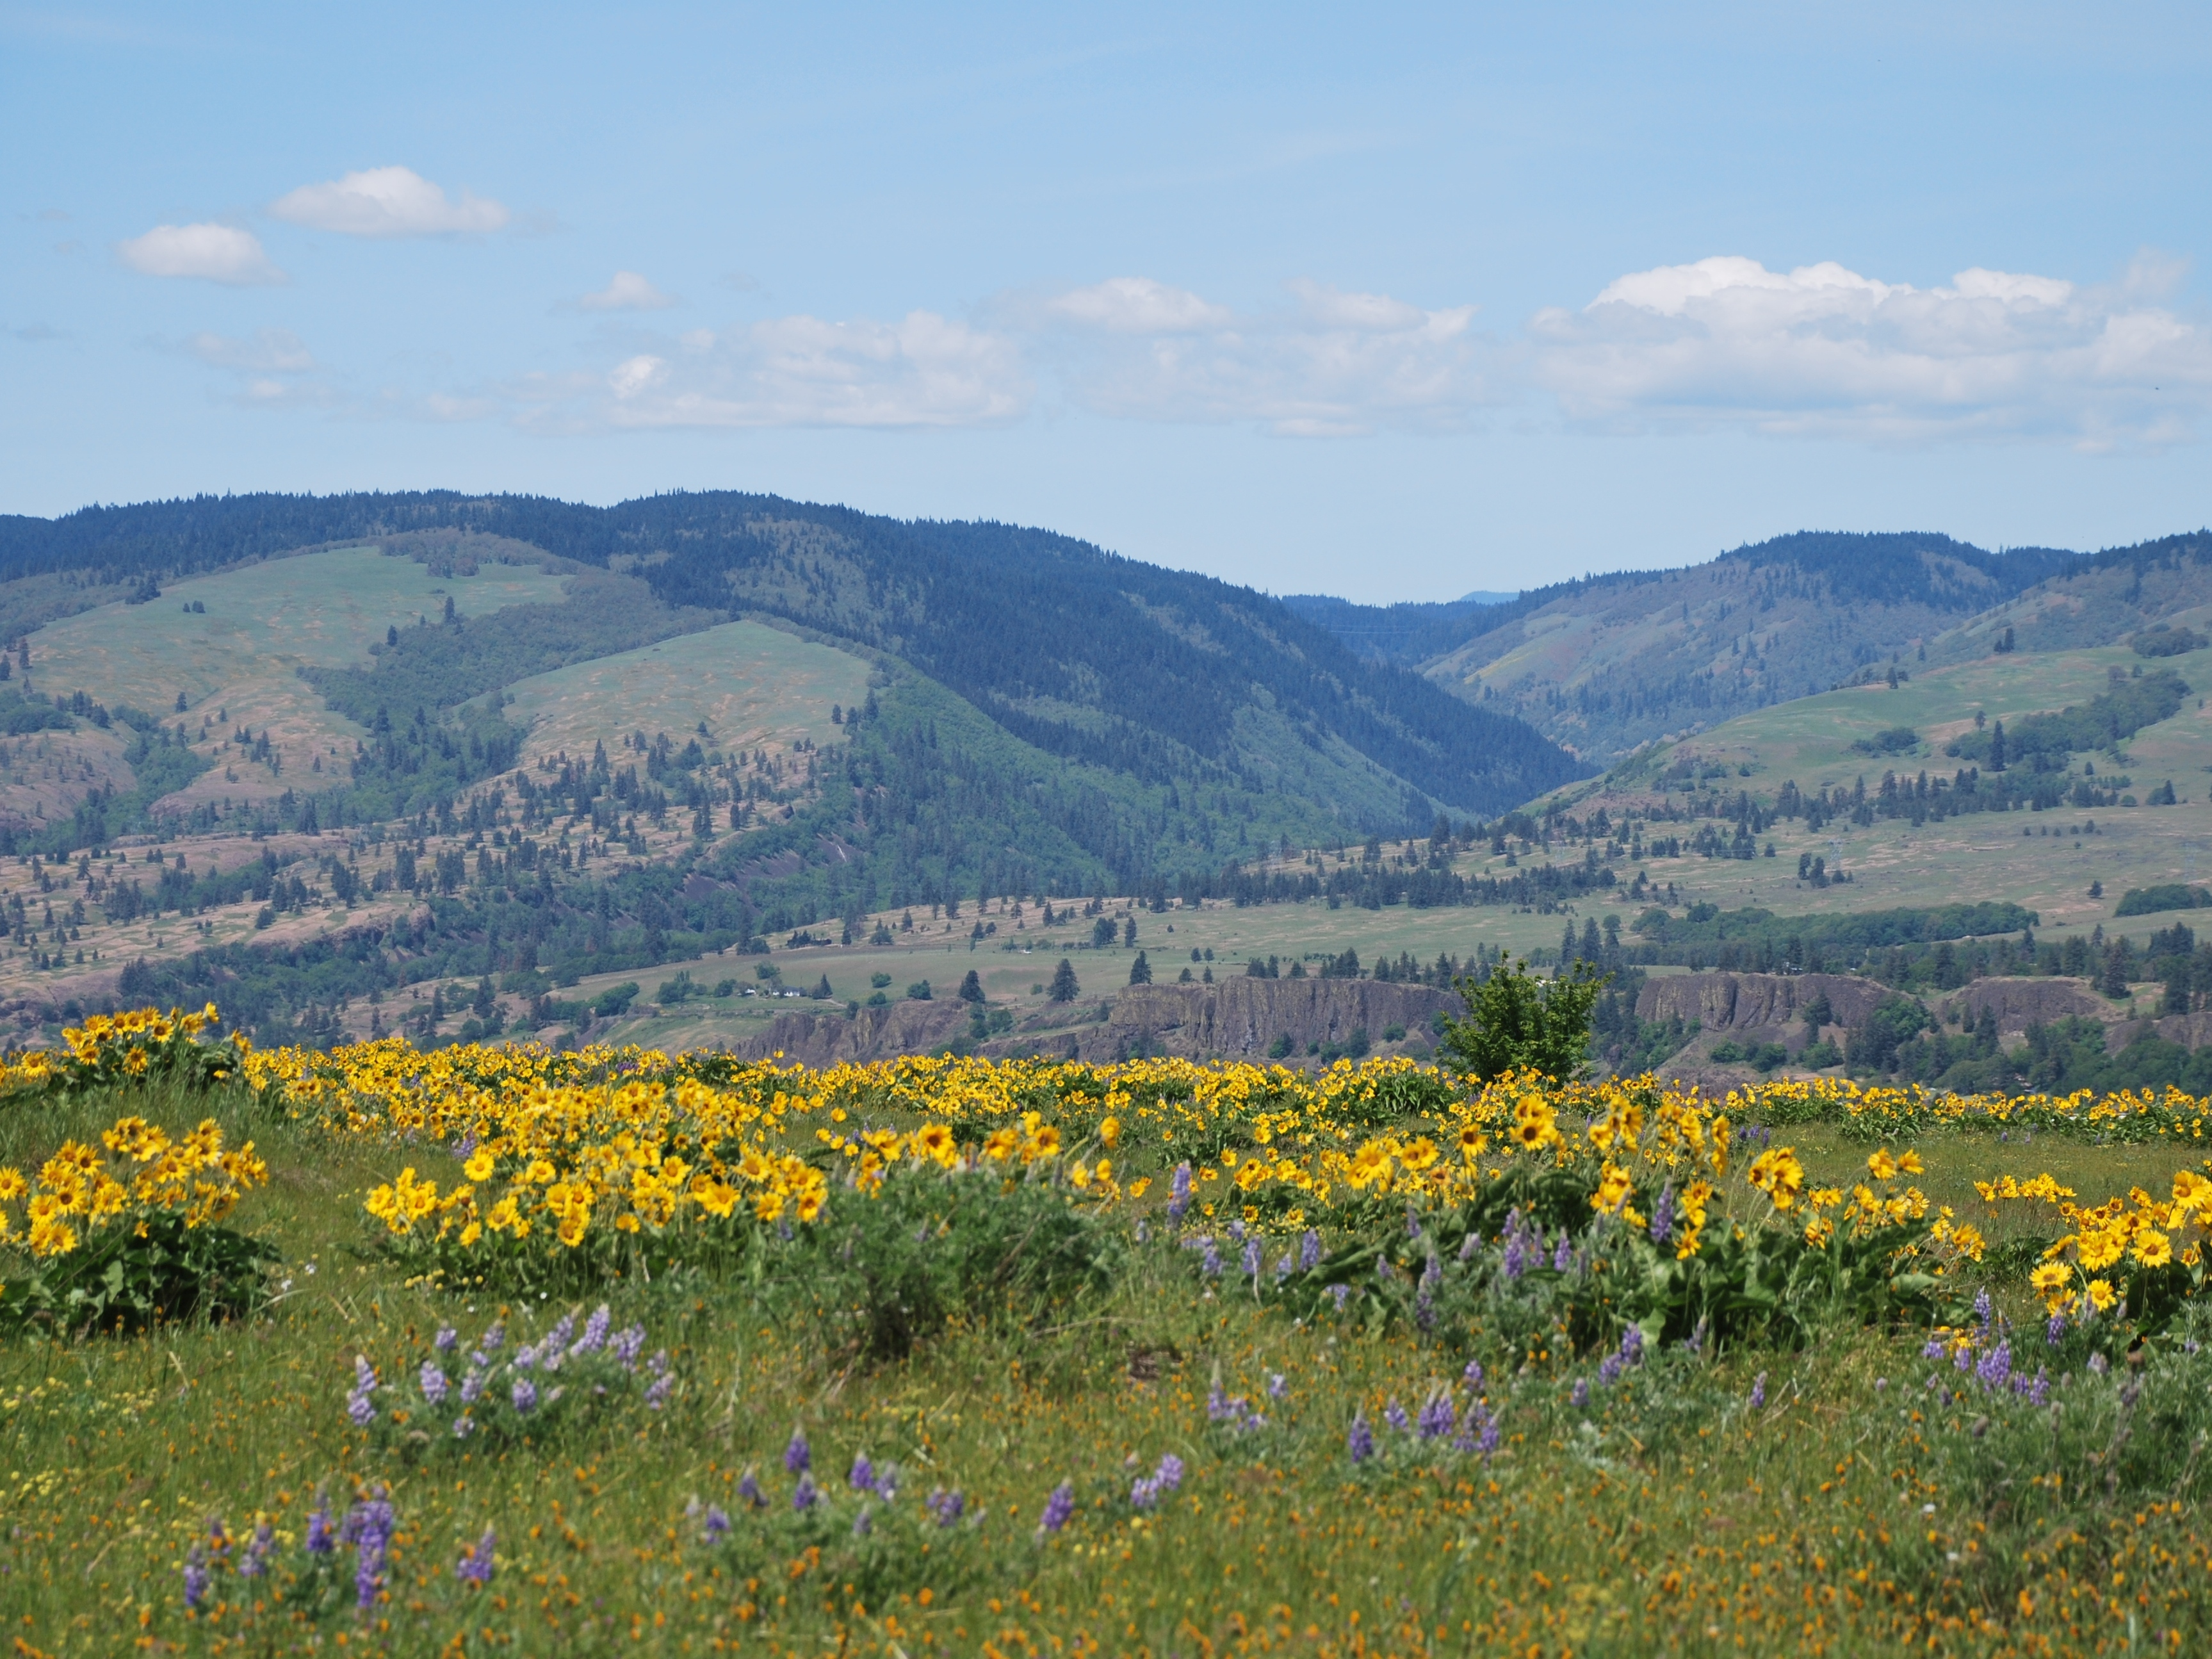 Early May 2019 Wildflowers blooming in the Columbia River Gorge